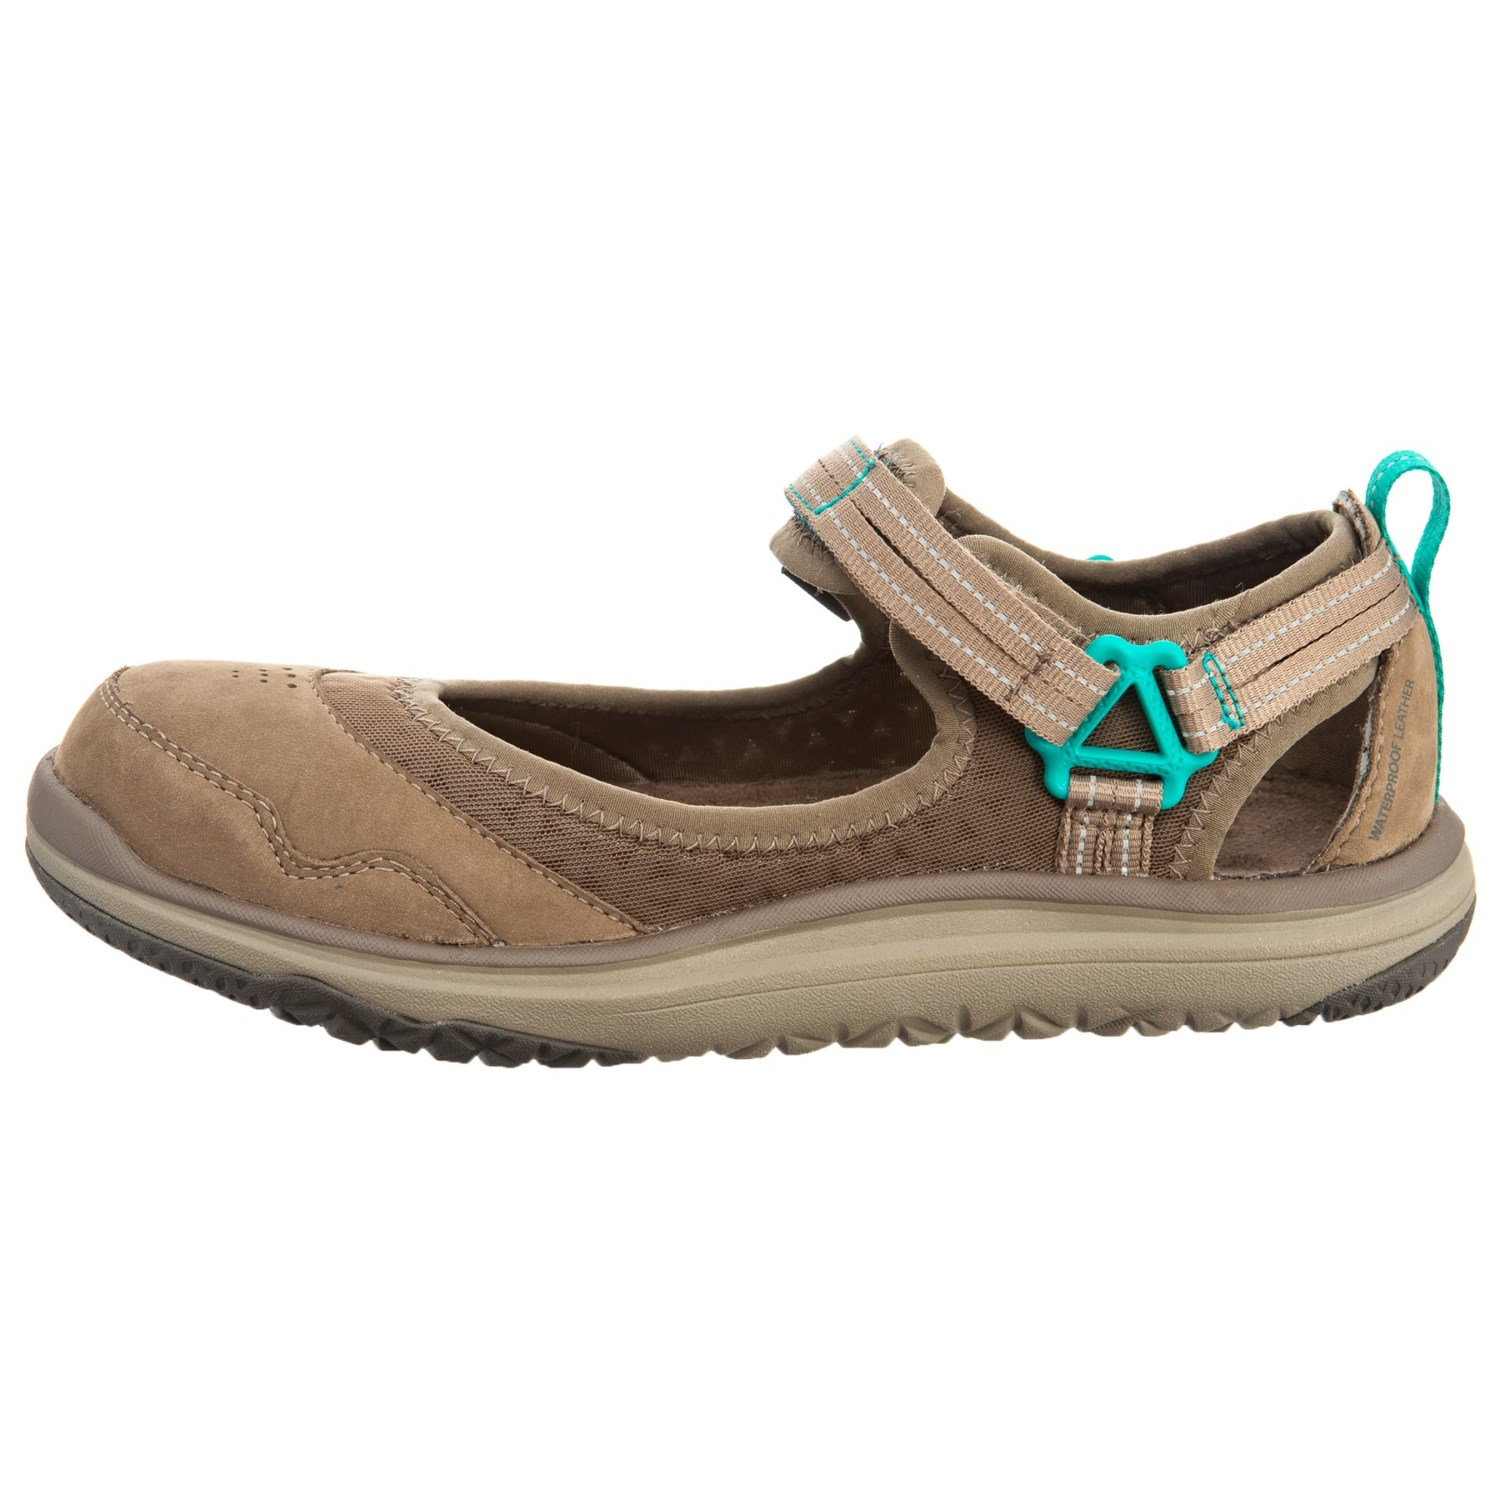 3f657fe9e0bbc Teva Terra-Float Travel Mary Jane Water Shoes (For Women) - Save 25%